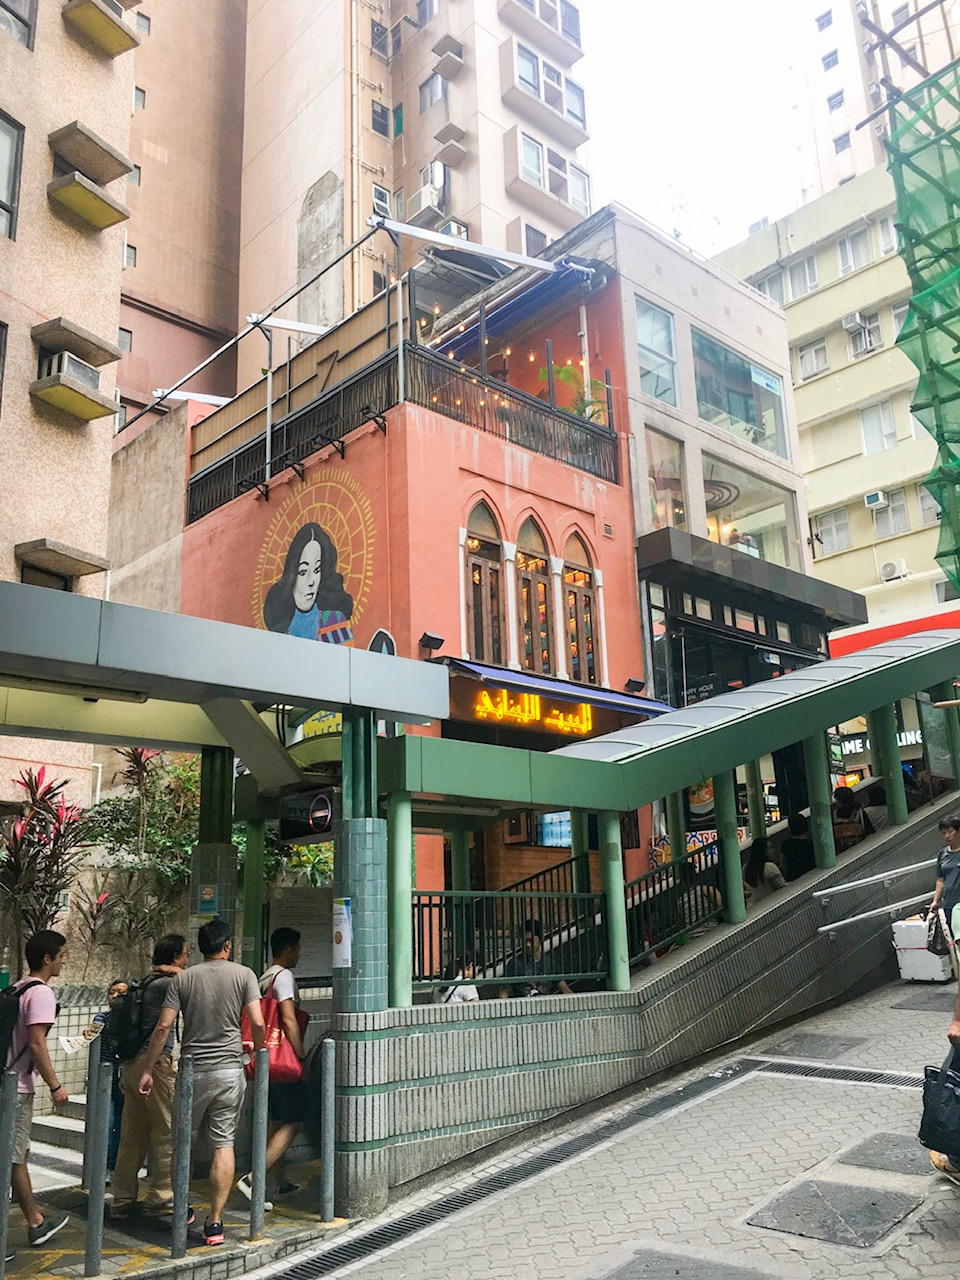 world's longest escalator, part of our hong kong itinerary